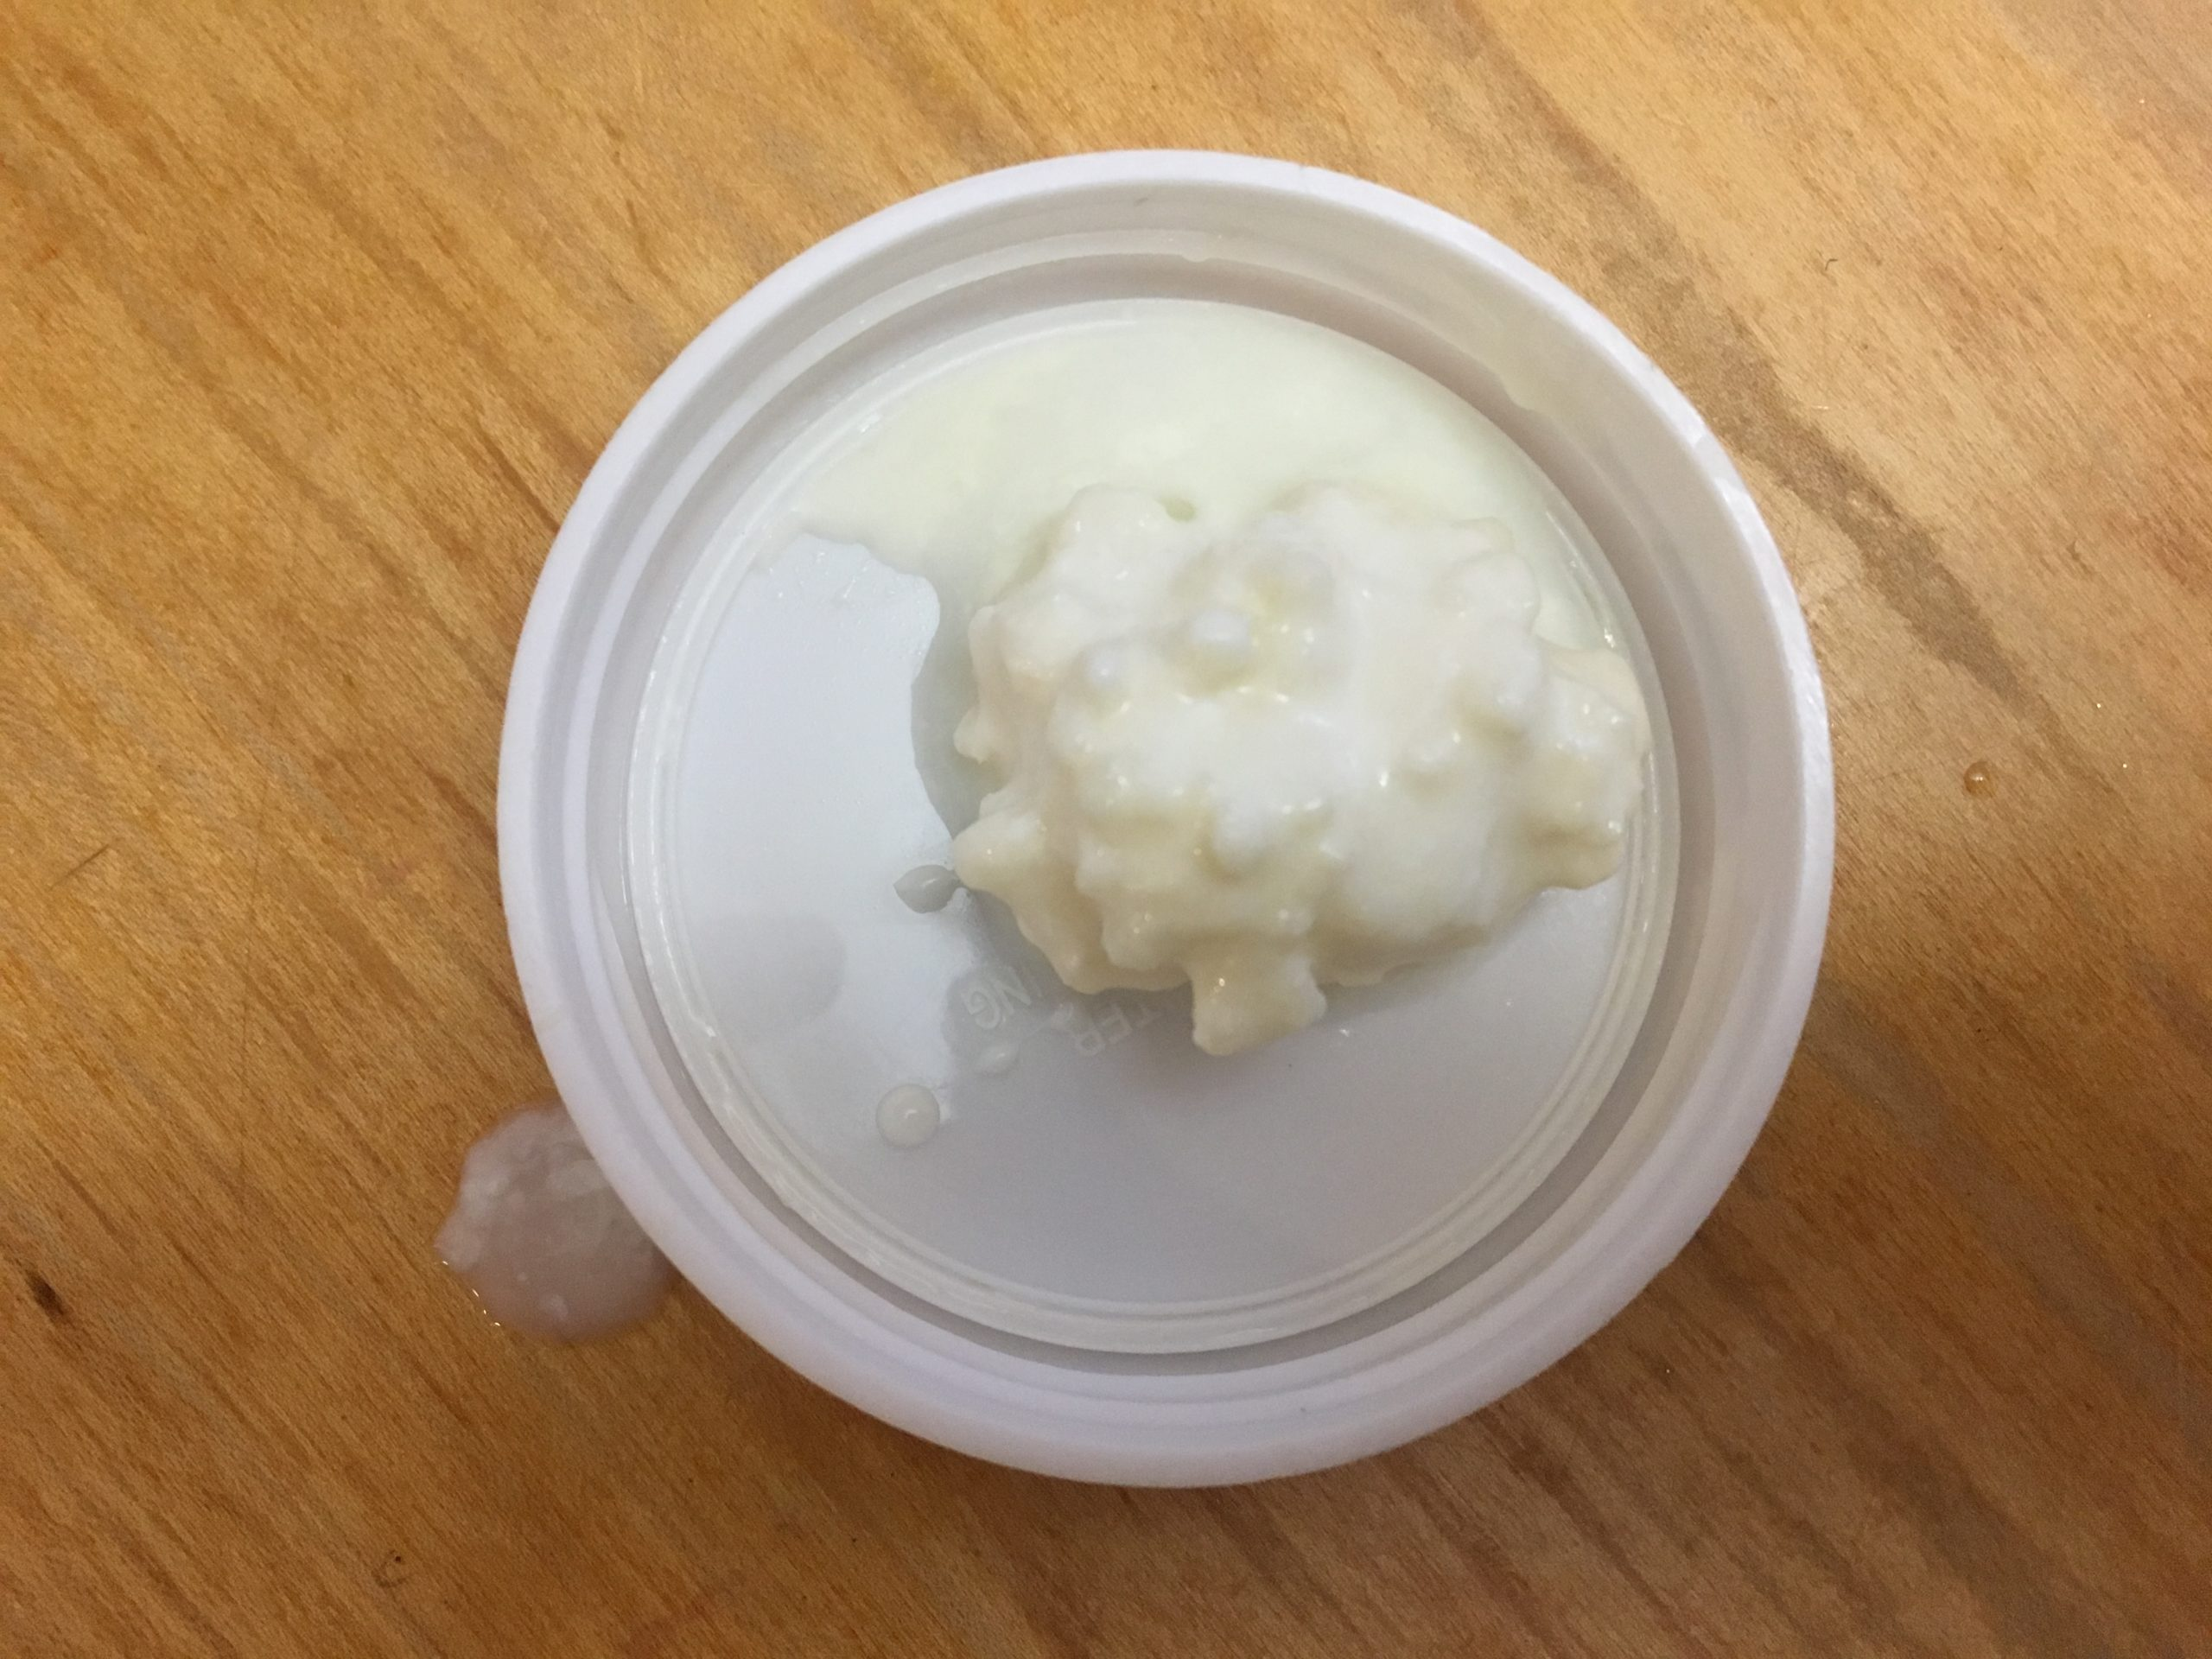 Colony of fresh kefir up close.